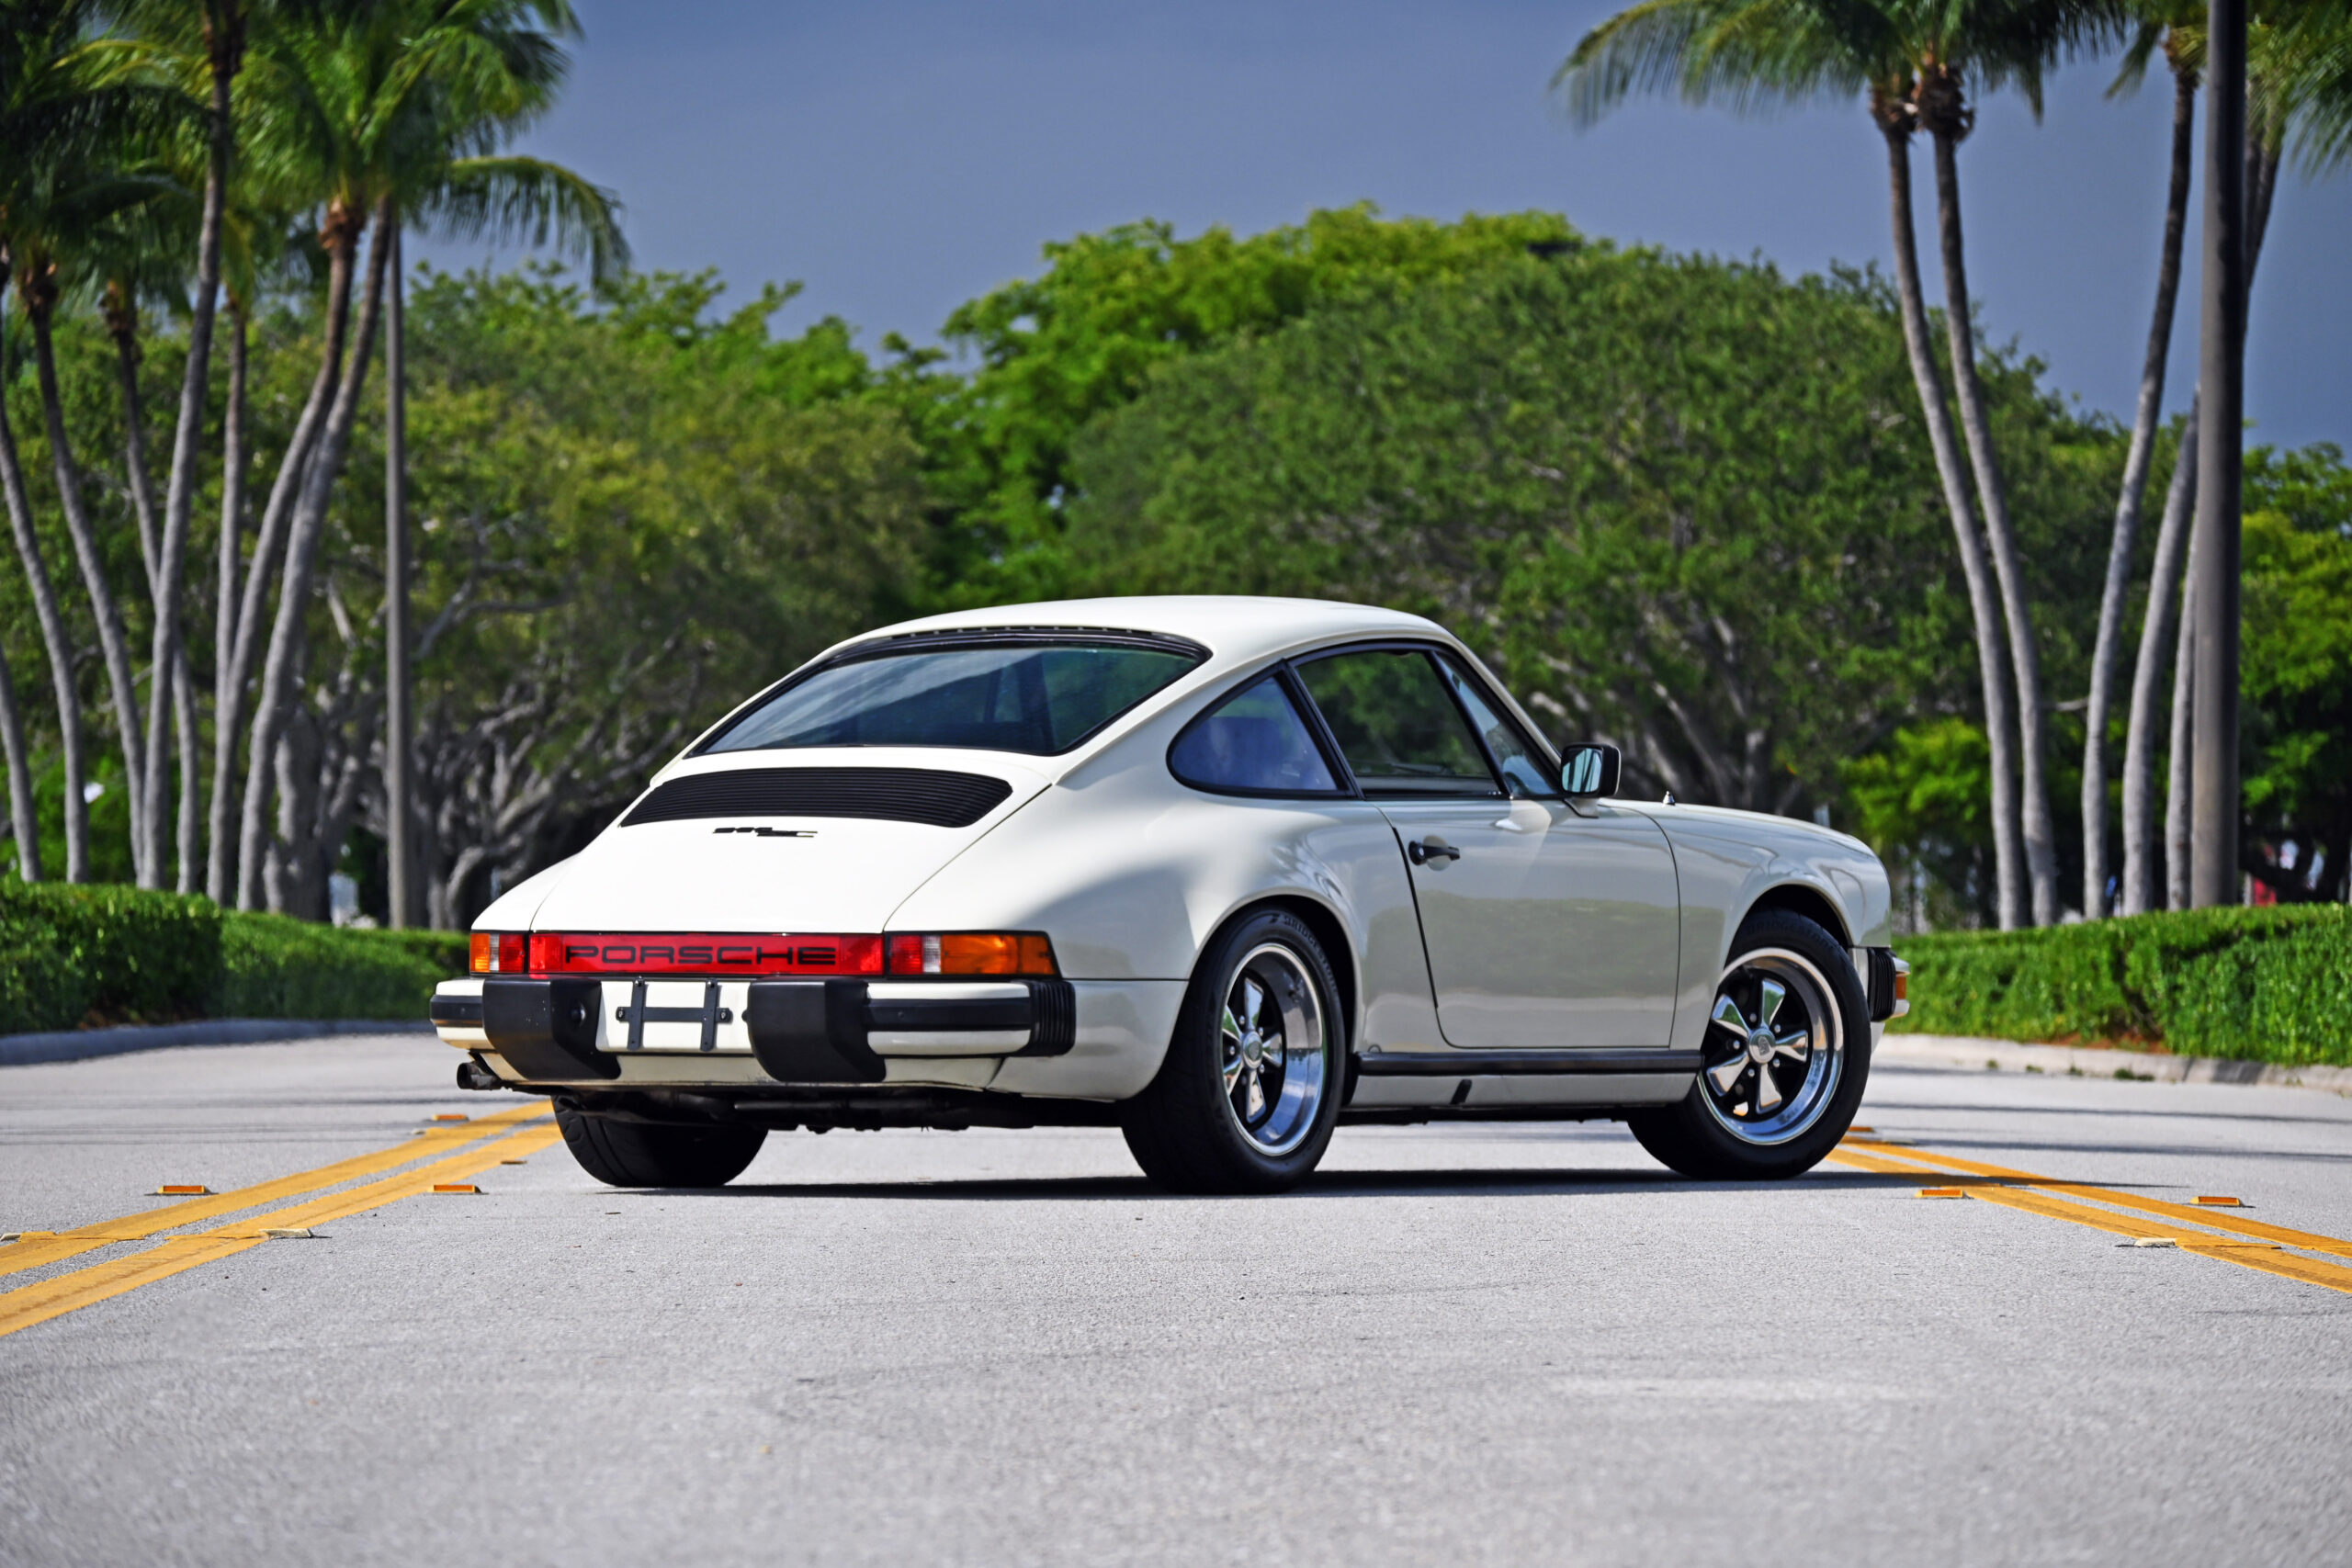 1983 Porsche 911 SC, Well sorted, 959 inspired custom leather interior, 930 Turbo Fuchs, Rennline accessories and more